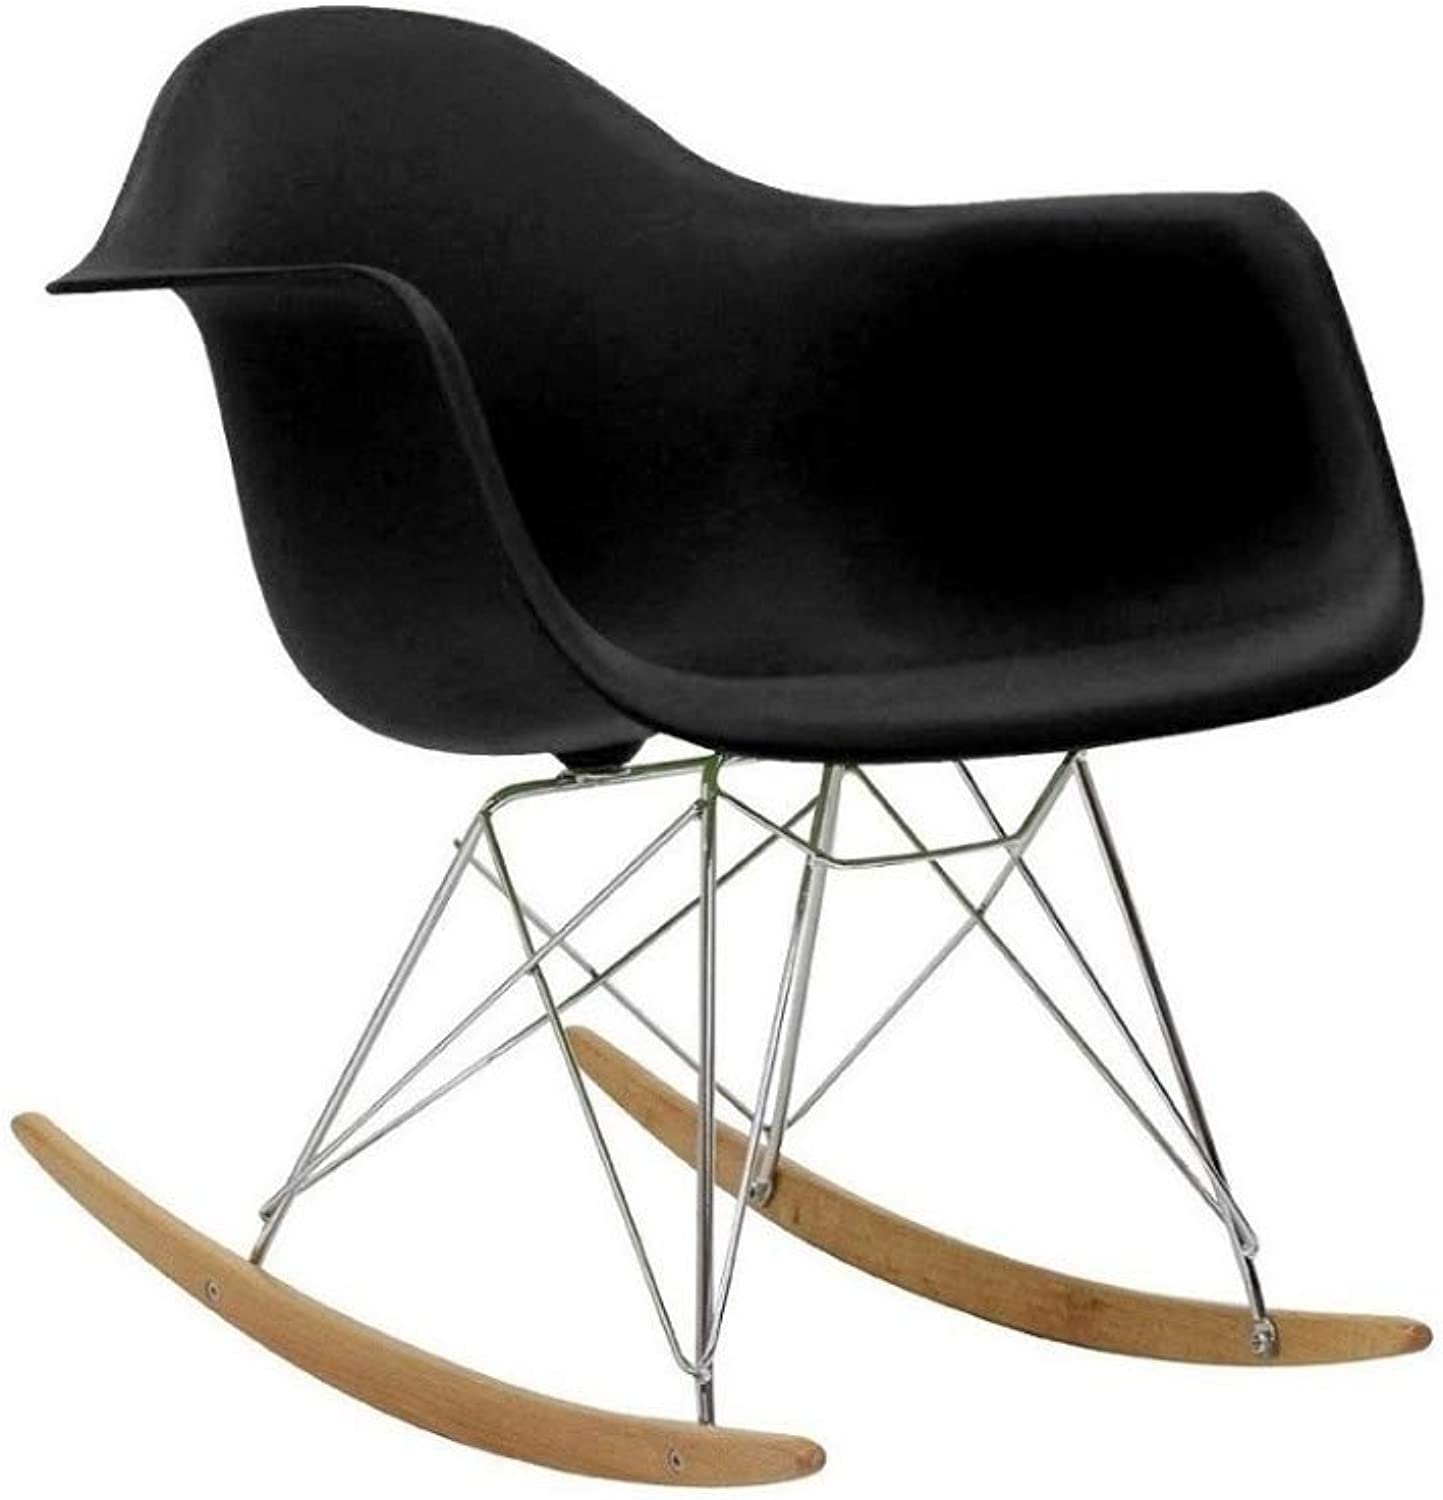 Take Me Home Furniture Eiffel Style Rocking Chair with Chrome Legs, Black, Dining Chair